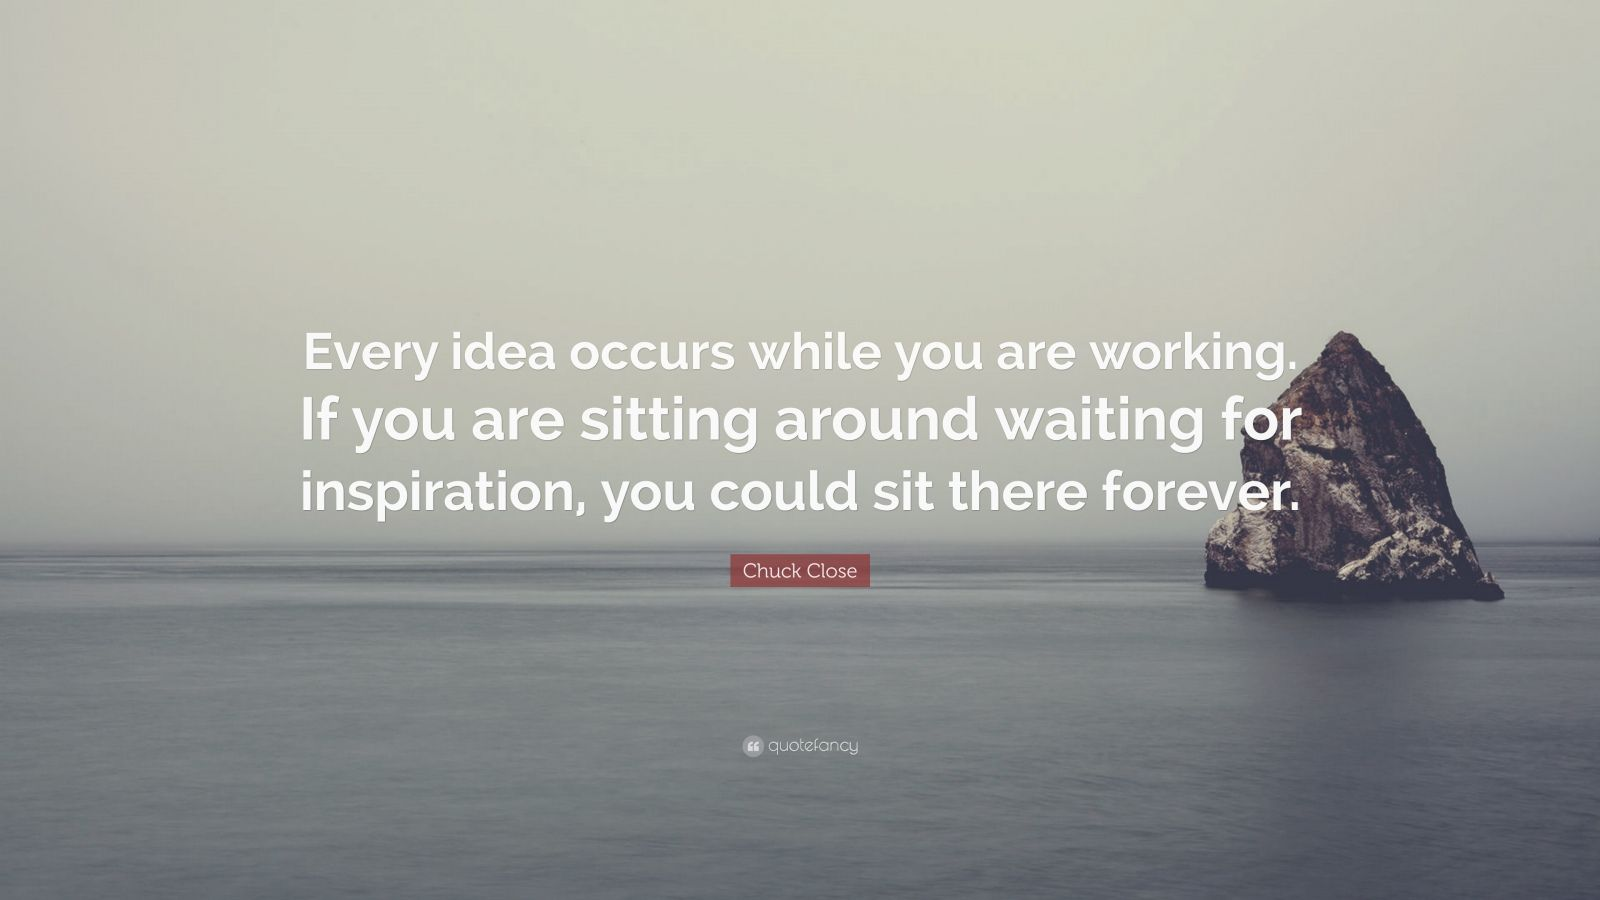 """Chuck Close Quote: """"Every idea occurs while you are working. If you are sitting around waiting for inspiration, you could sit there forever."""""""